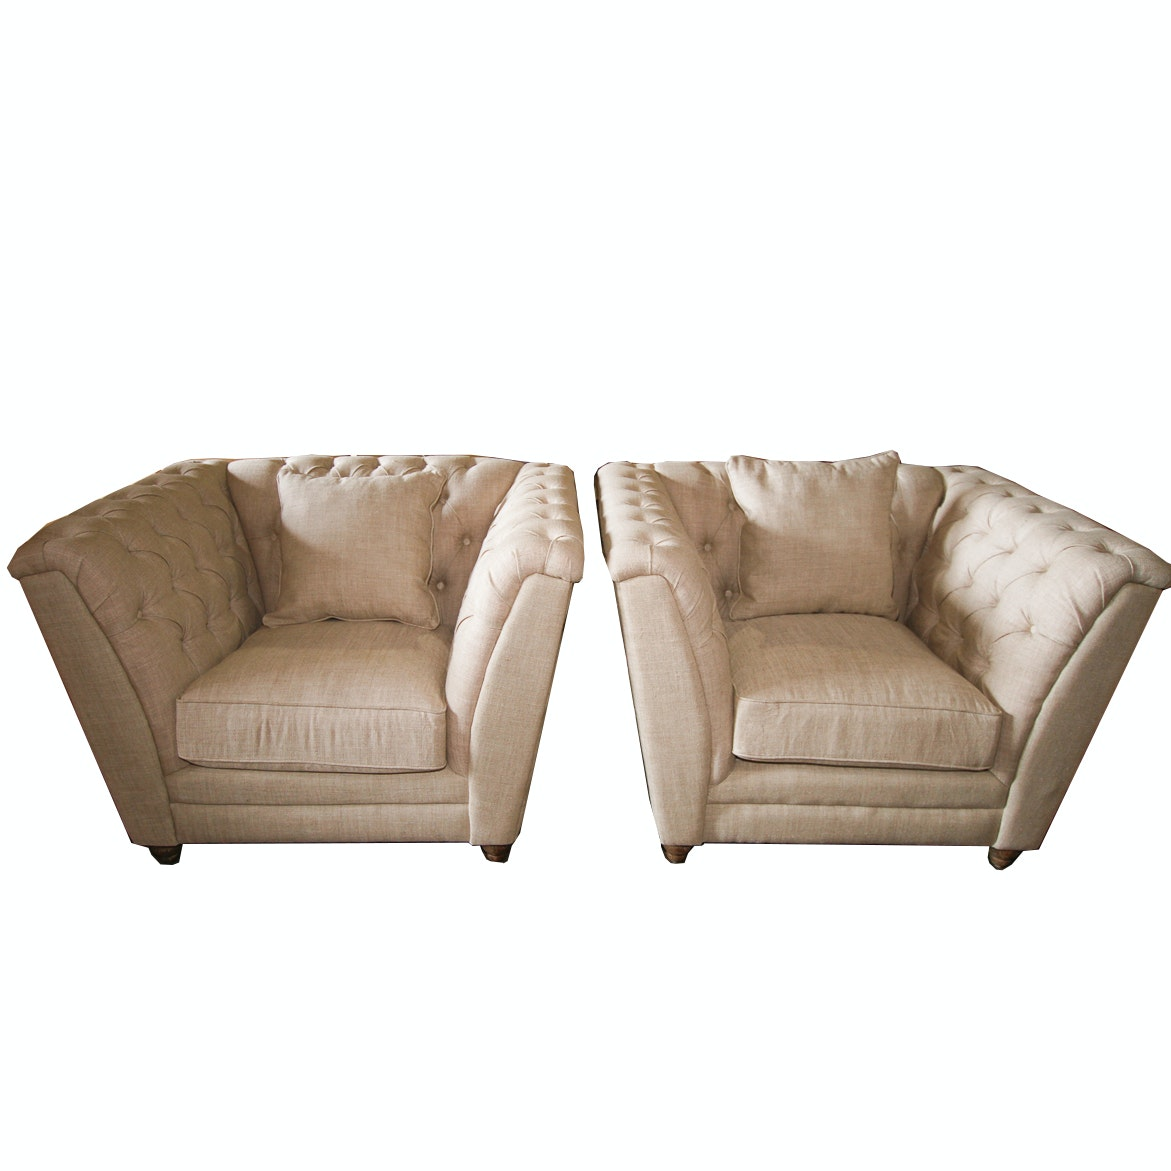 "Cream ""Kensington Chesterfield"" Chairs by Blink Furniture"